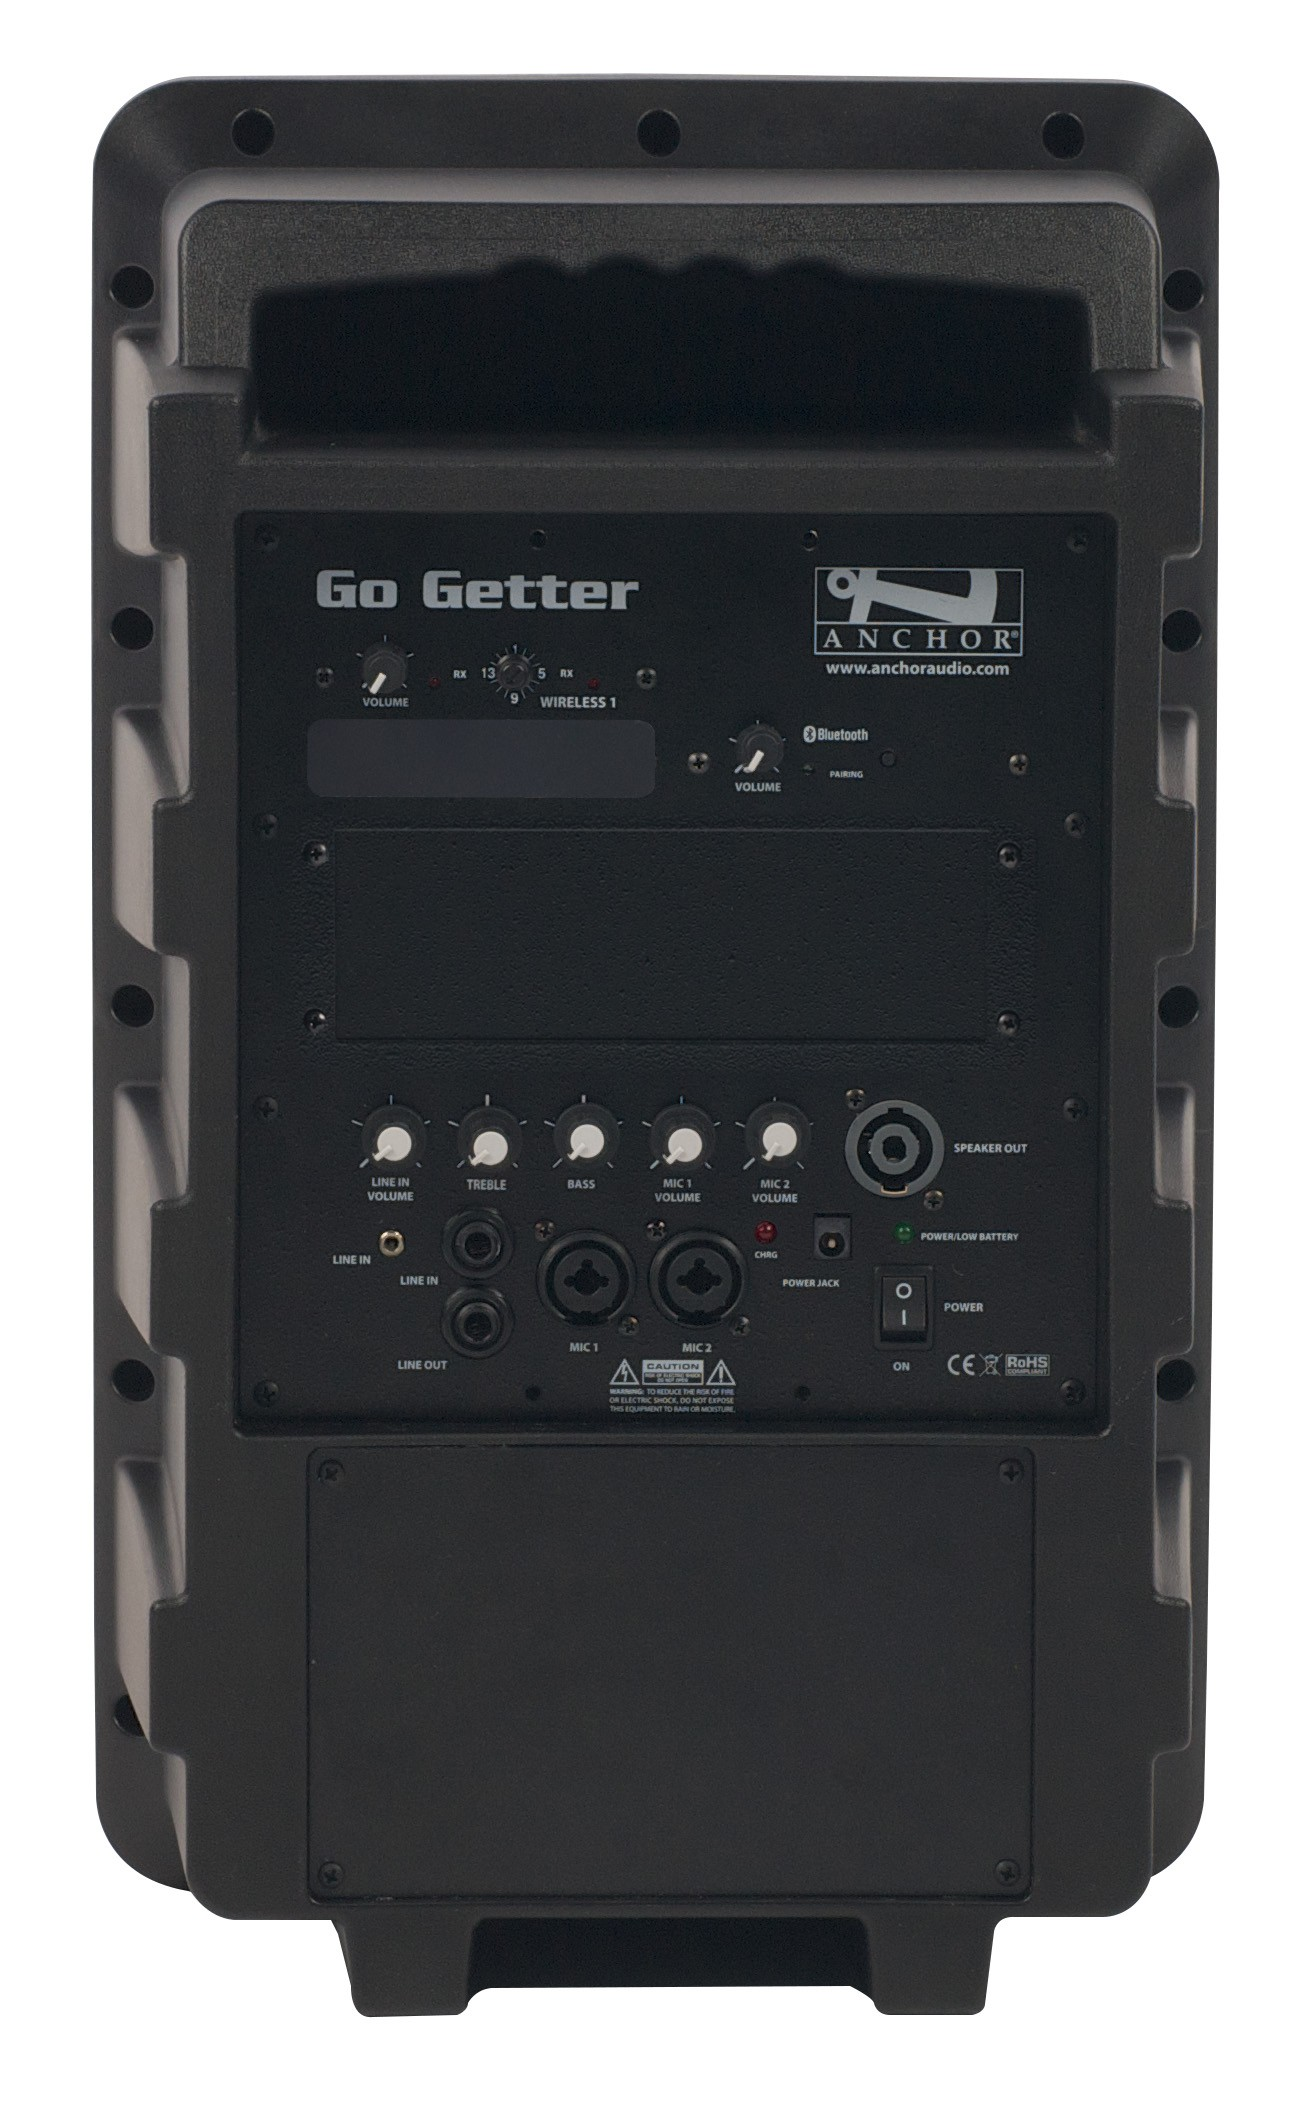 Anchor Audio GG-8000U1 Go Getter with Bluetooth & one built-in wireless receiver